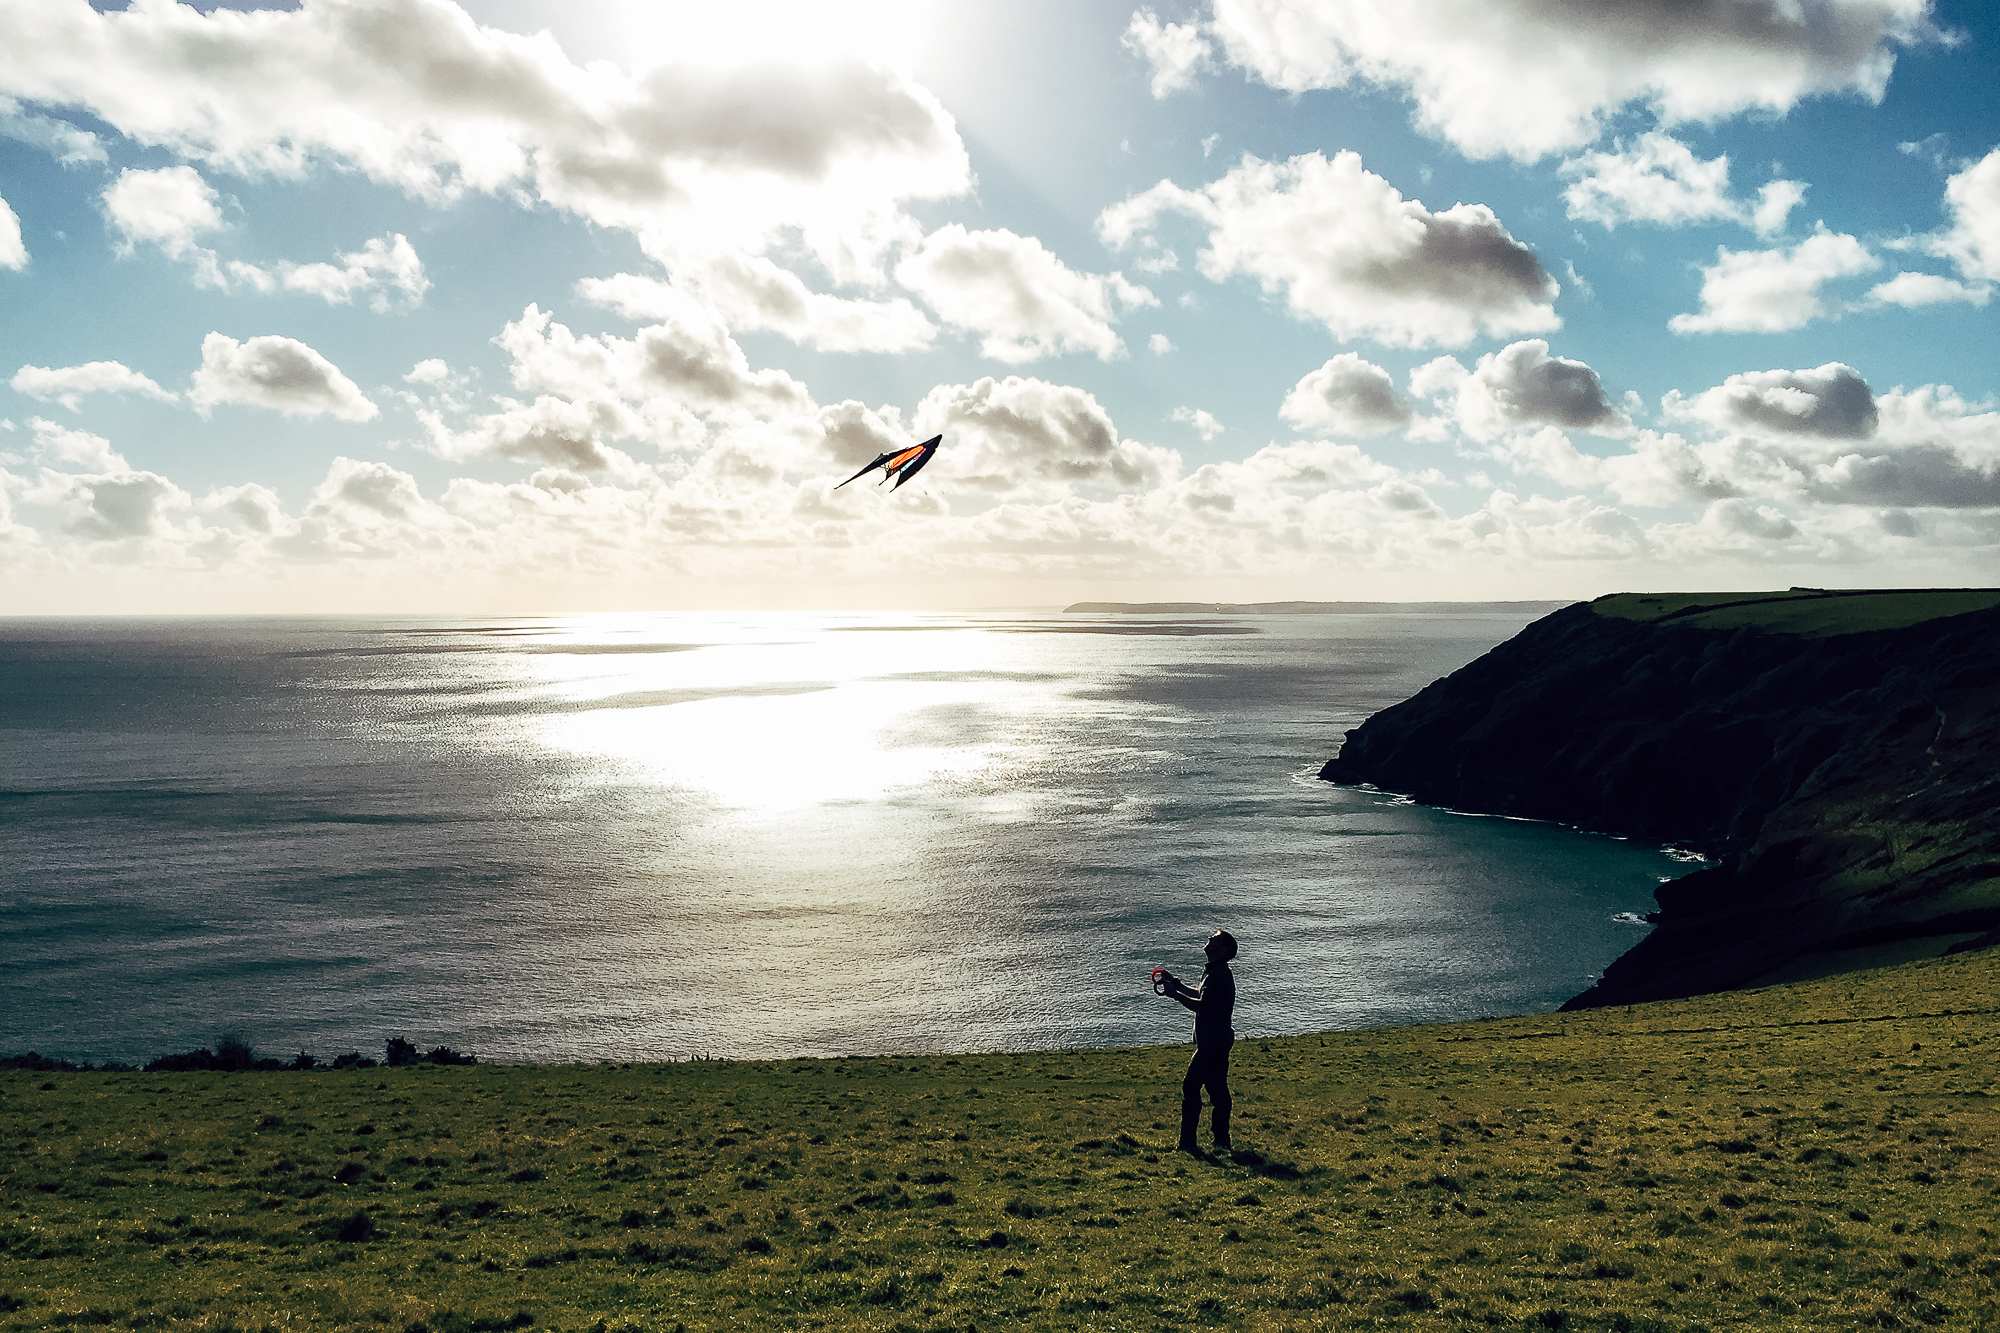 Flying a kite, things to do this spring